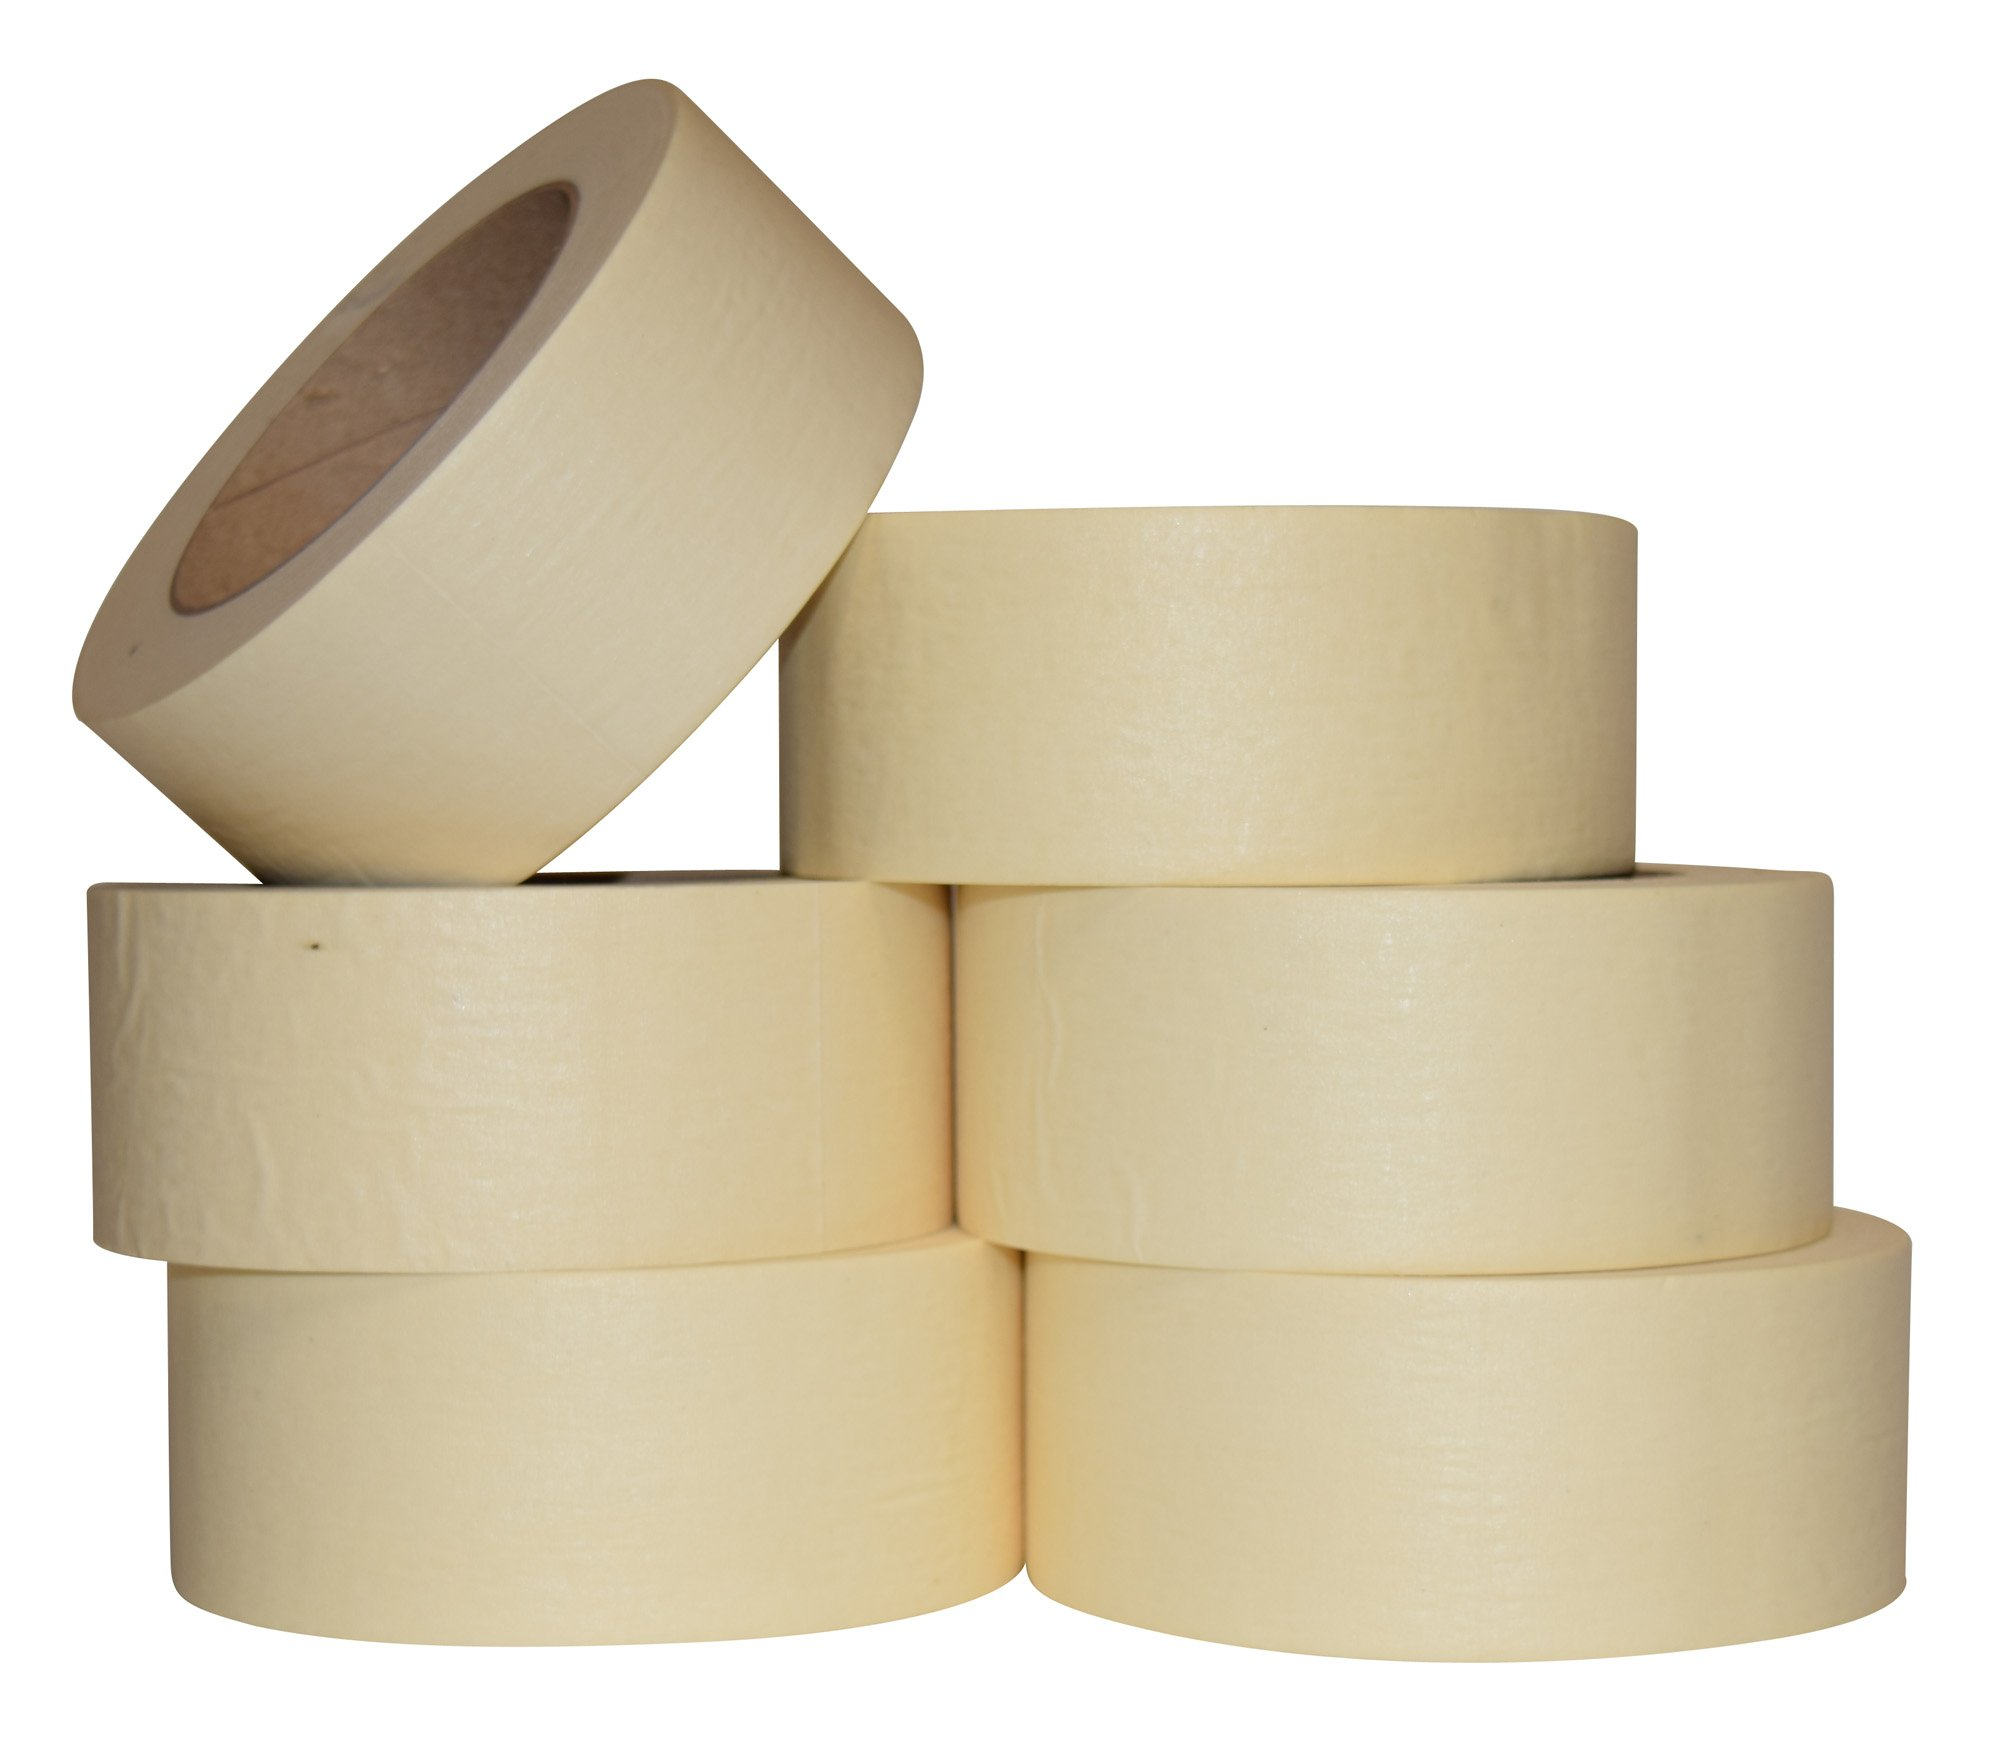 6 ROLLS - 2 Inch Masking Tape for General Purpose / Painting - 60 yards per roll